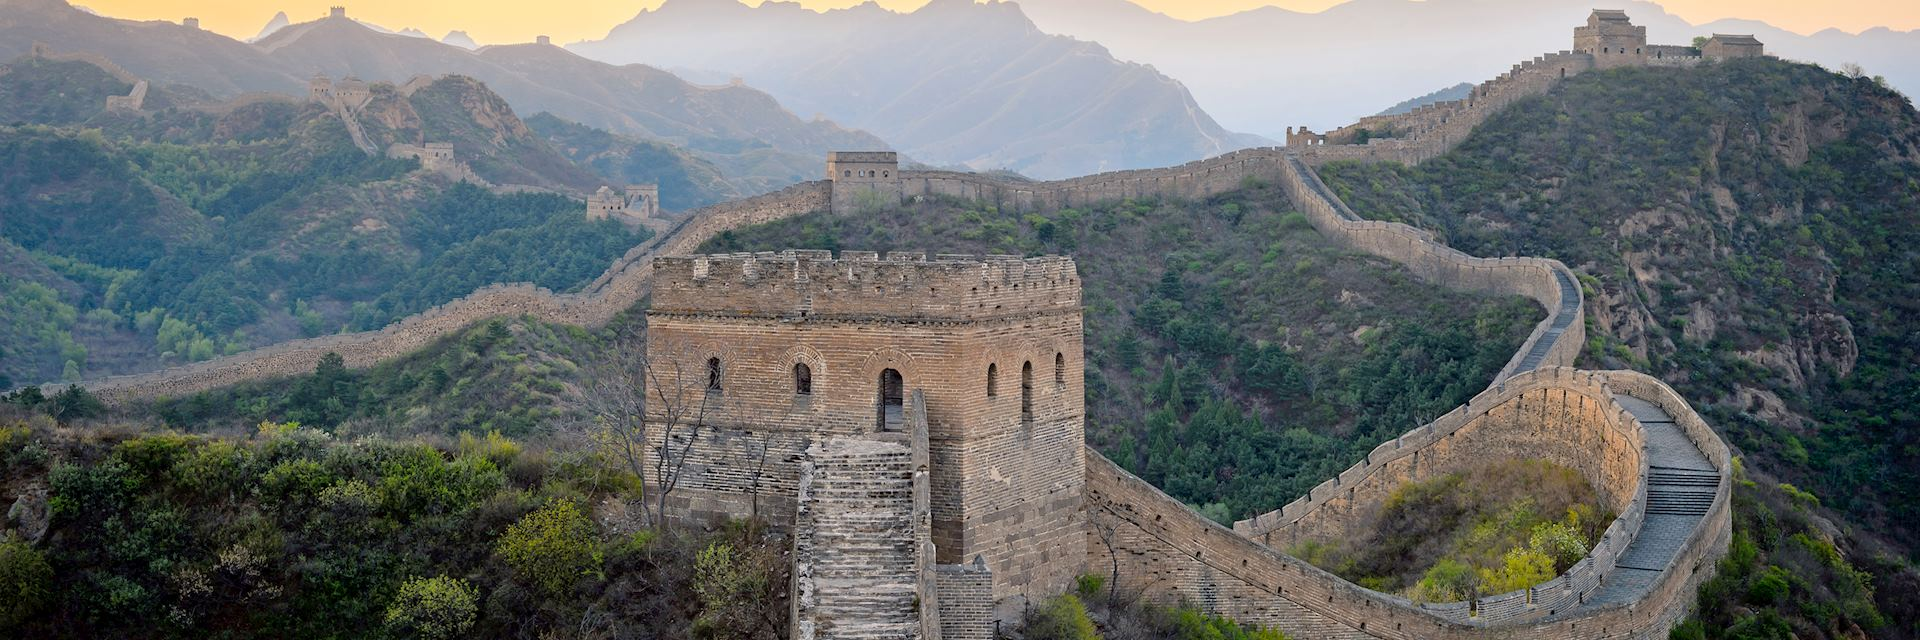 Dawn breaking over the Great Wall of China in Jinshanling